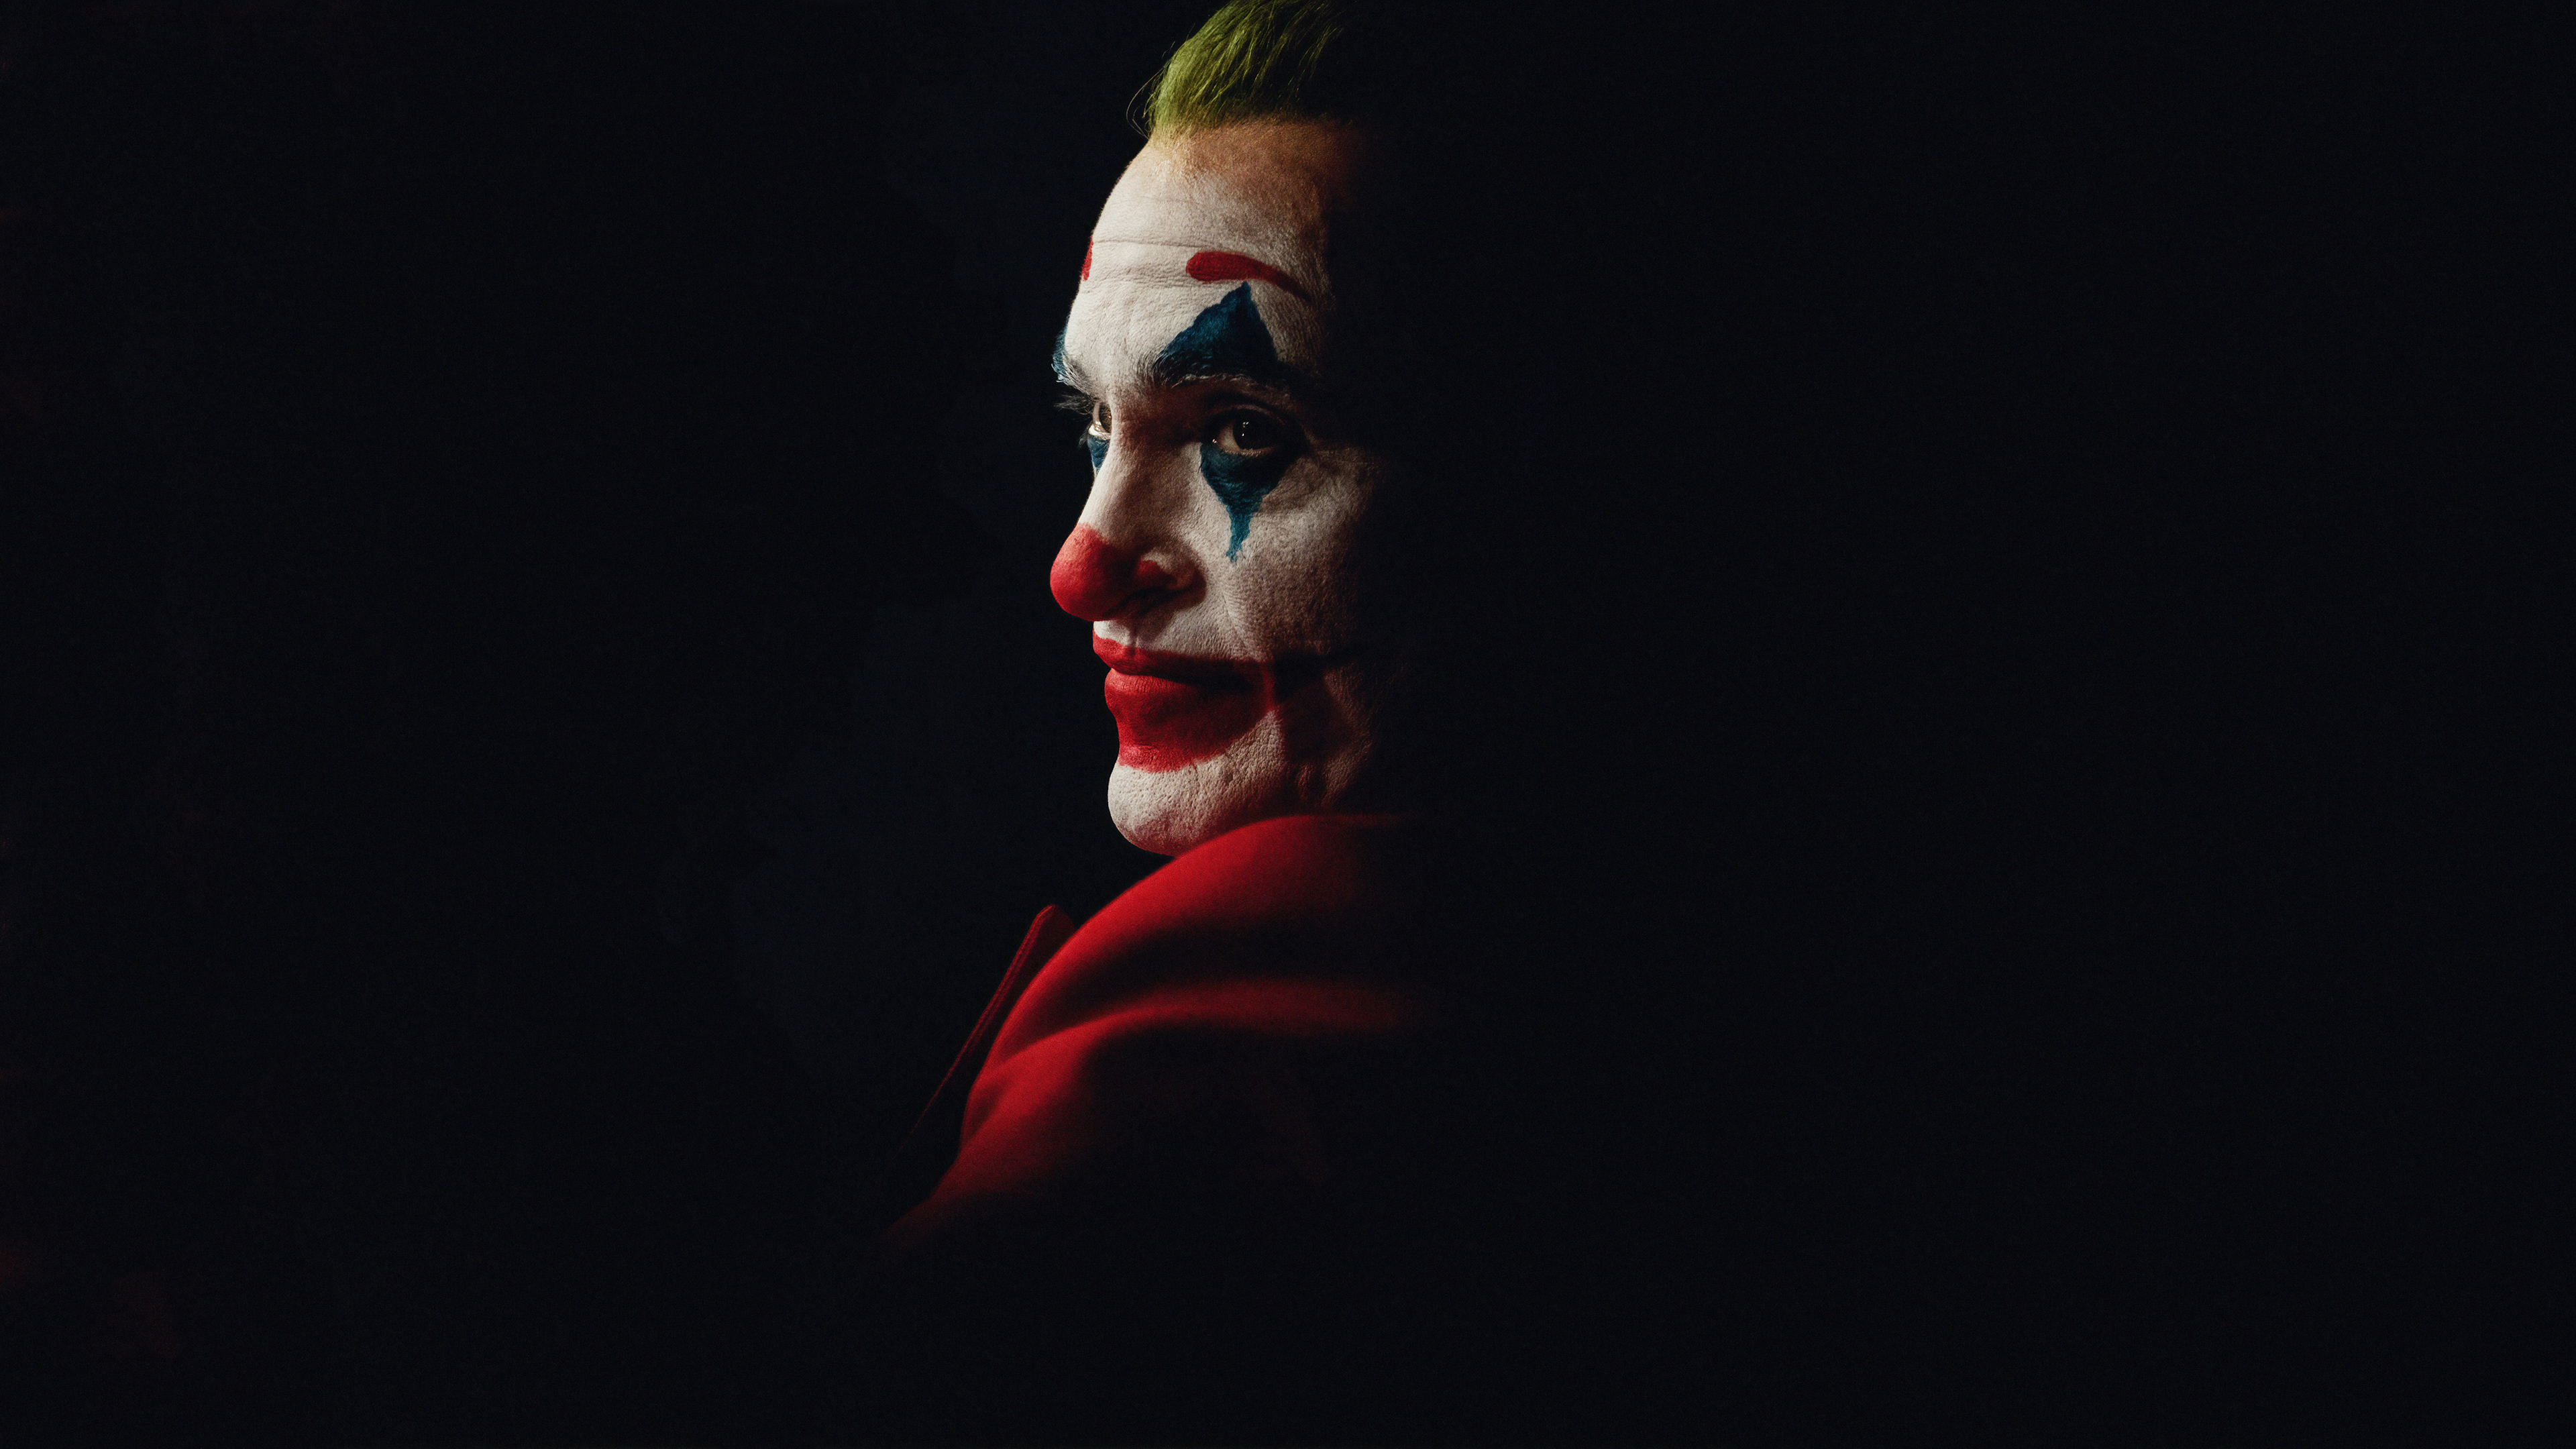 The Joker Joaquin Phoenix Dark 4k Hd Movies 4k Wallpapers